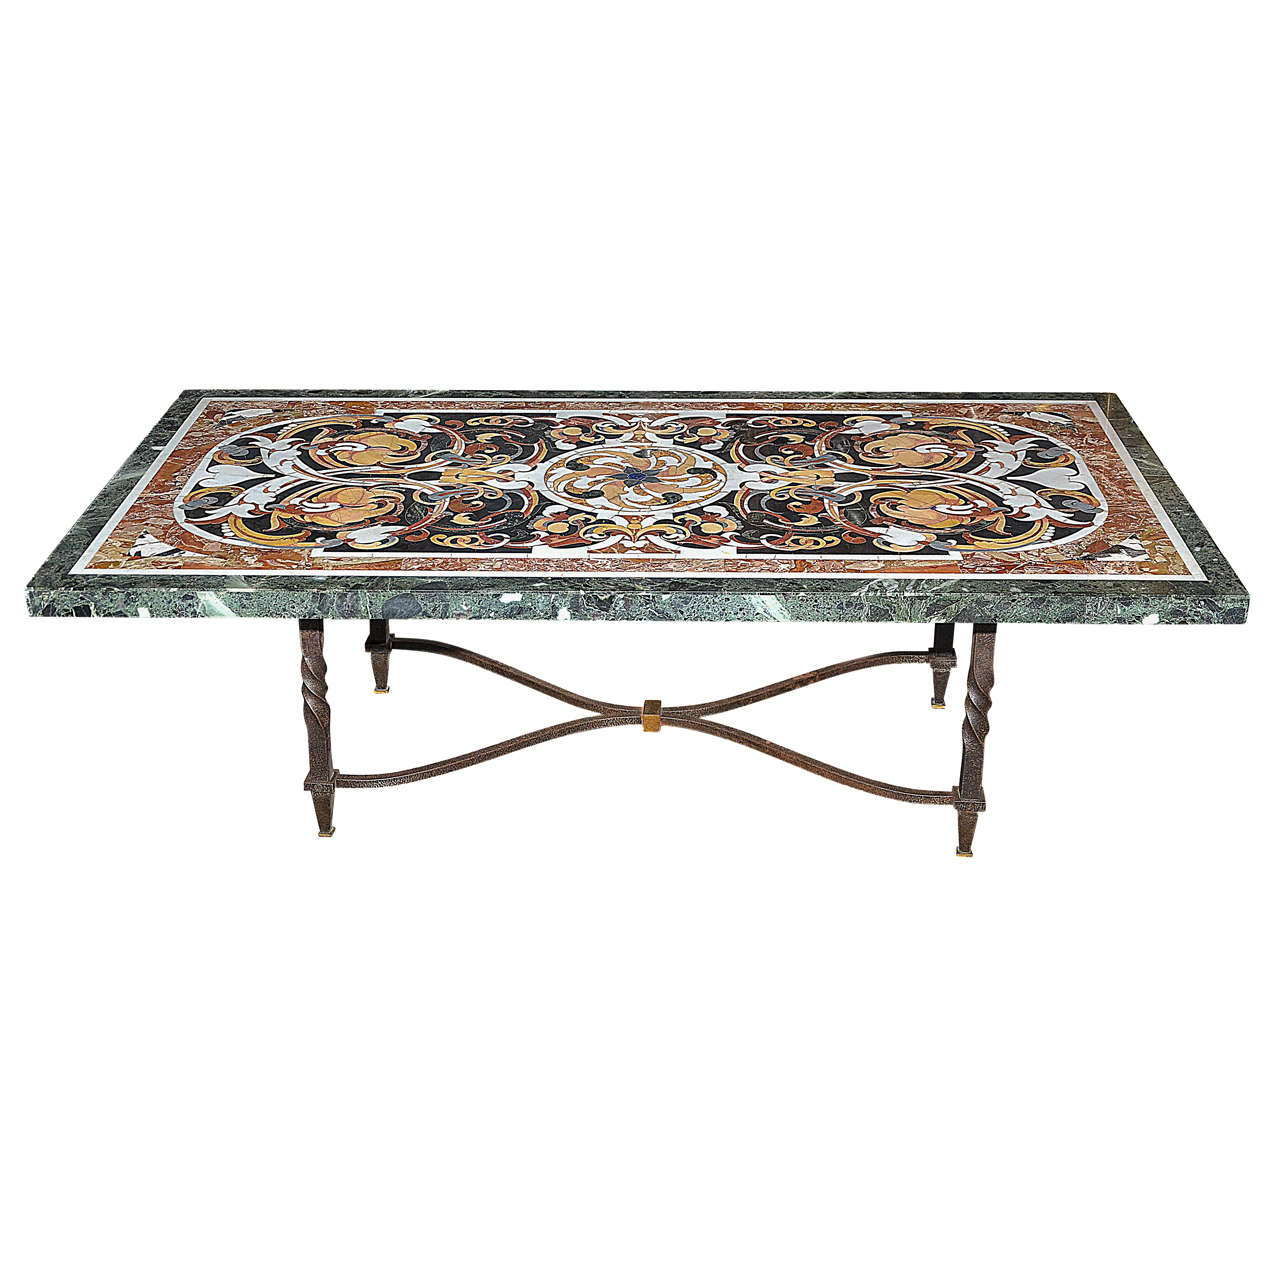 Early 20th Century Italian Coffee Table With Marble Marquetry At 1stdibs